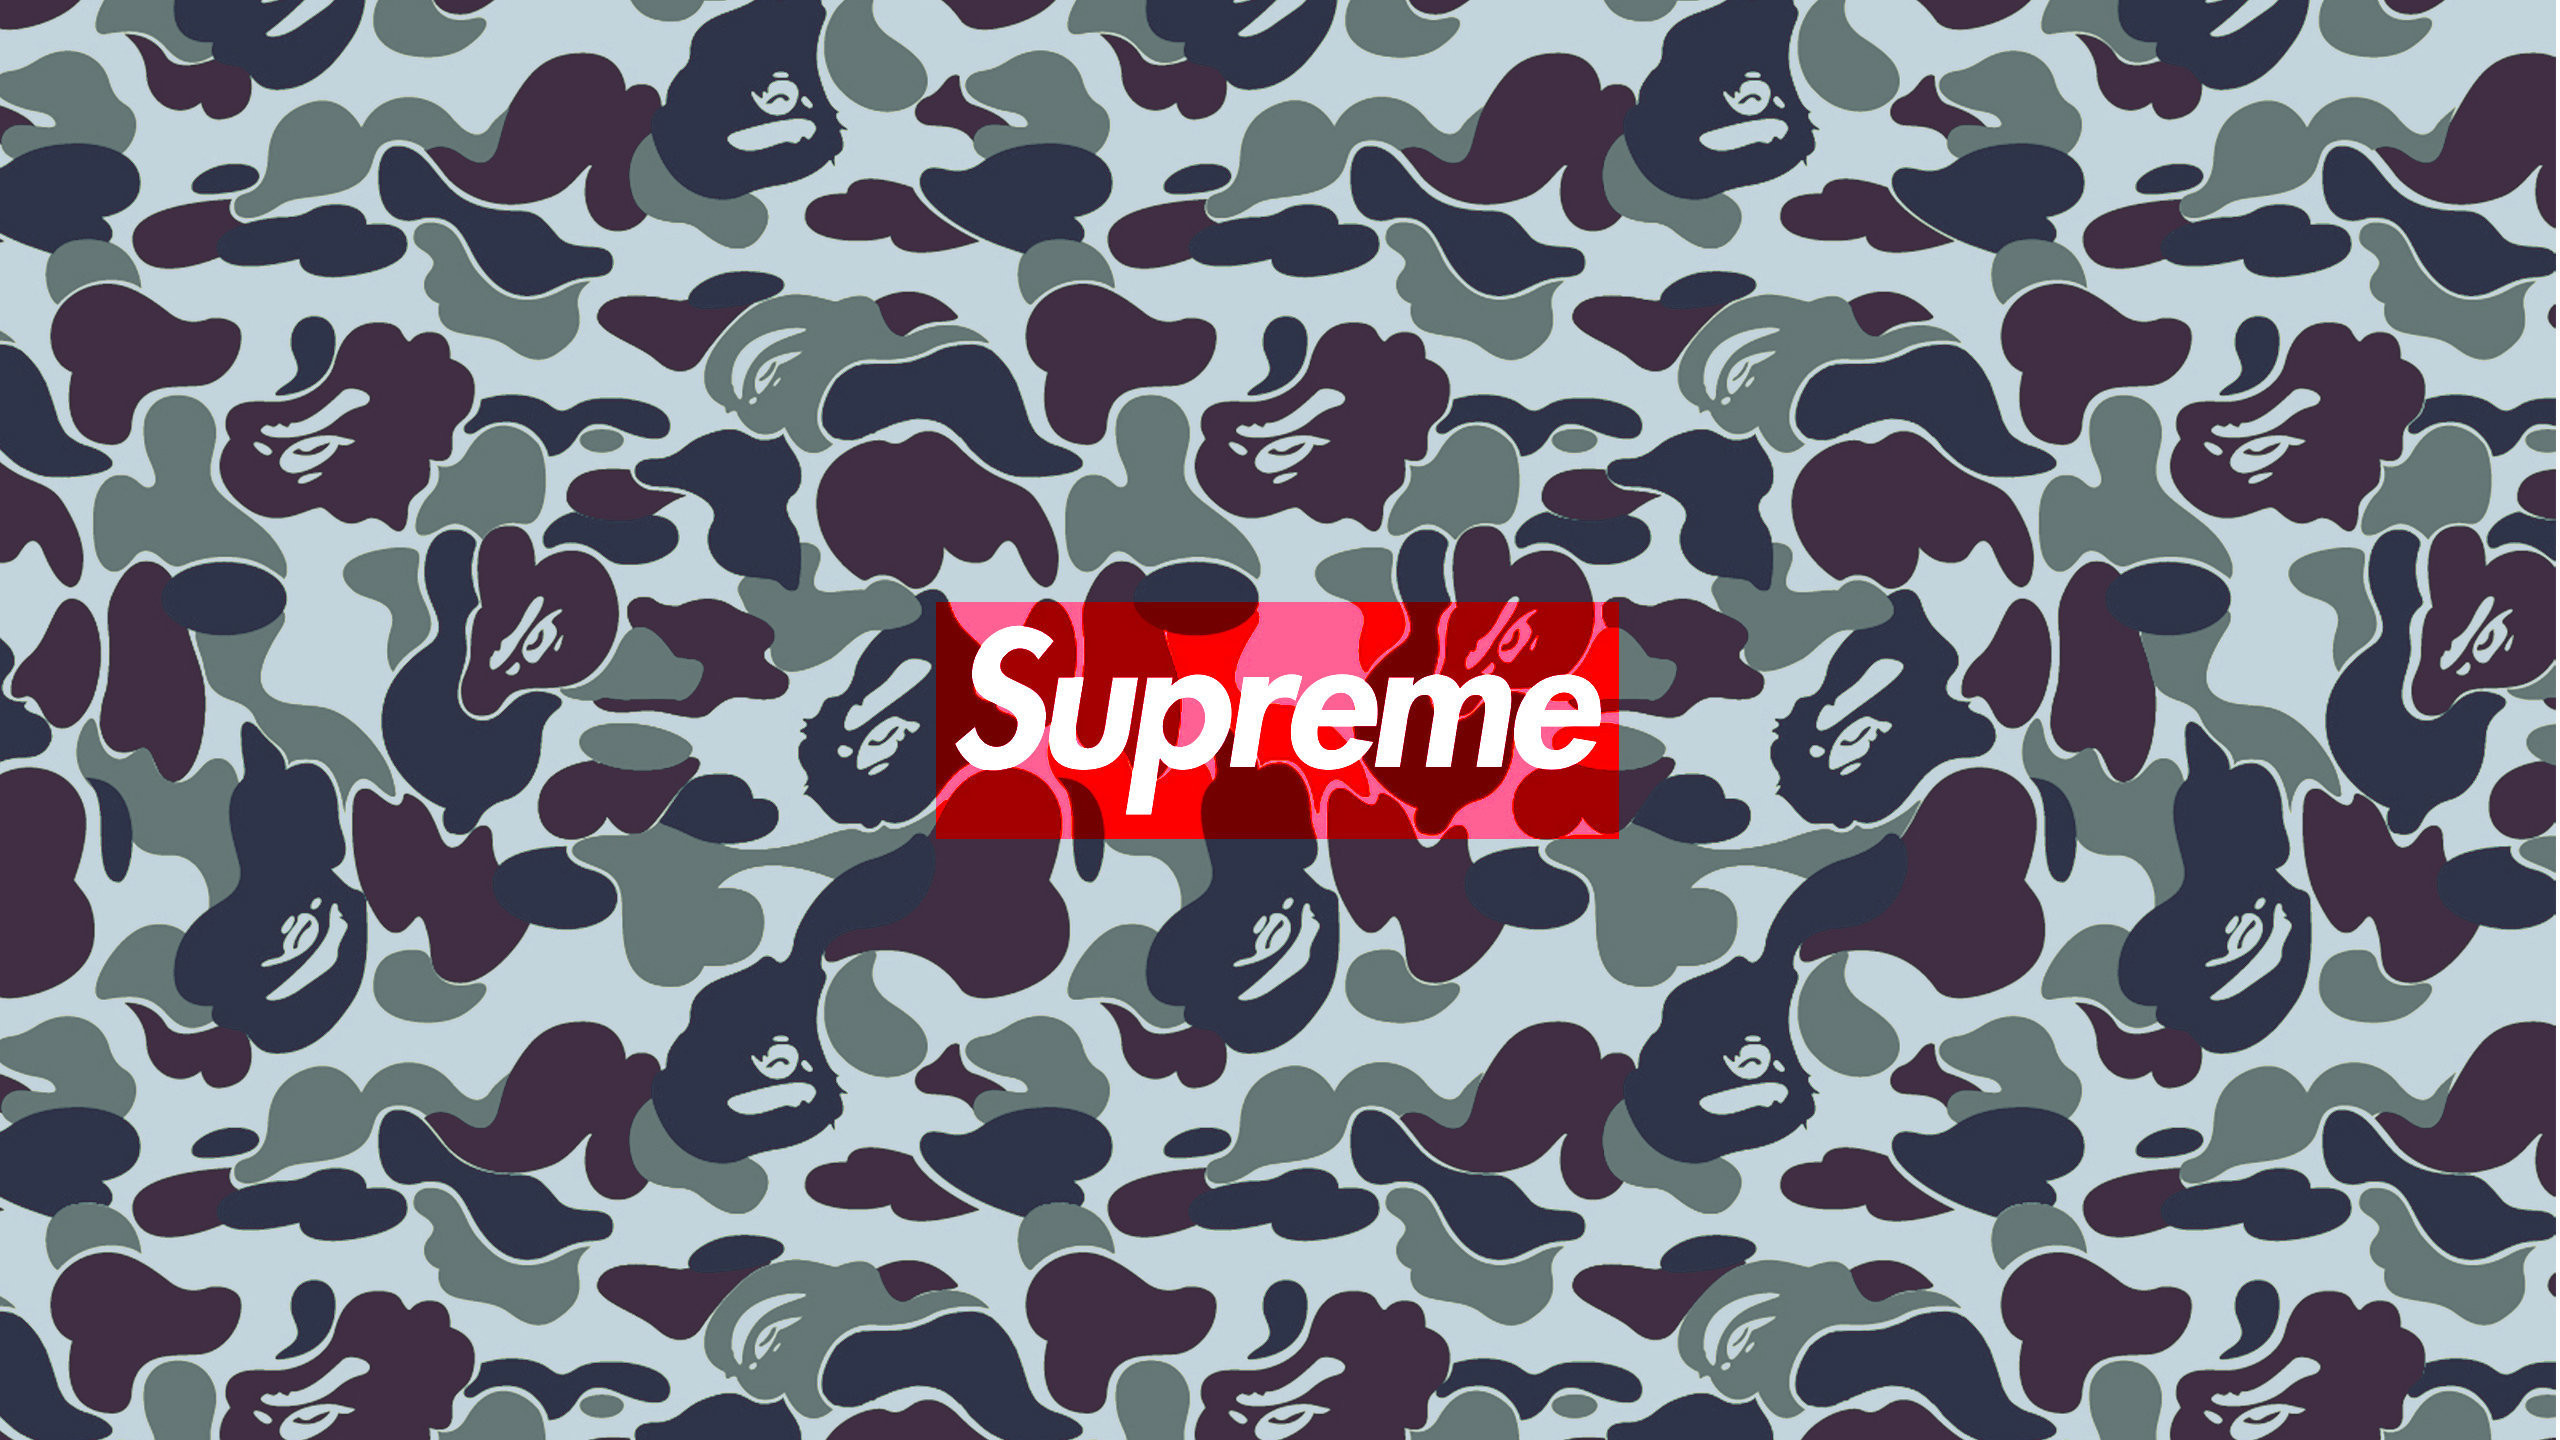 Download The Supreme Bape Urban Camo Wallpaper Below - Supreme Wallpaper For Ps4 - HD Wallpaper